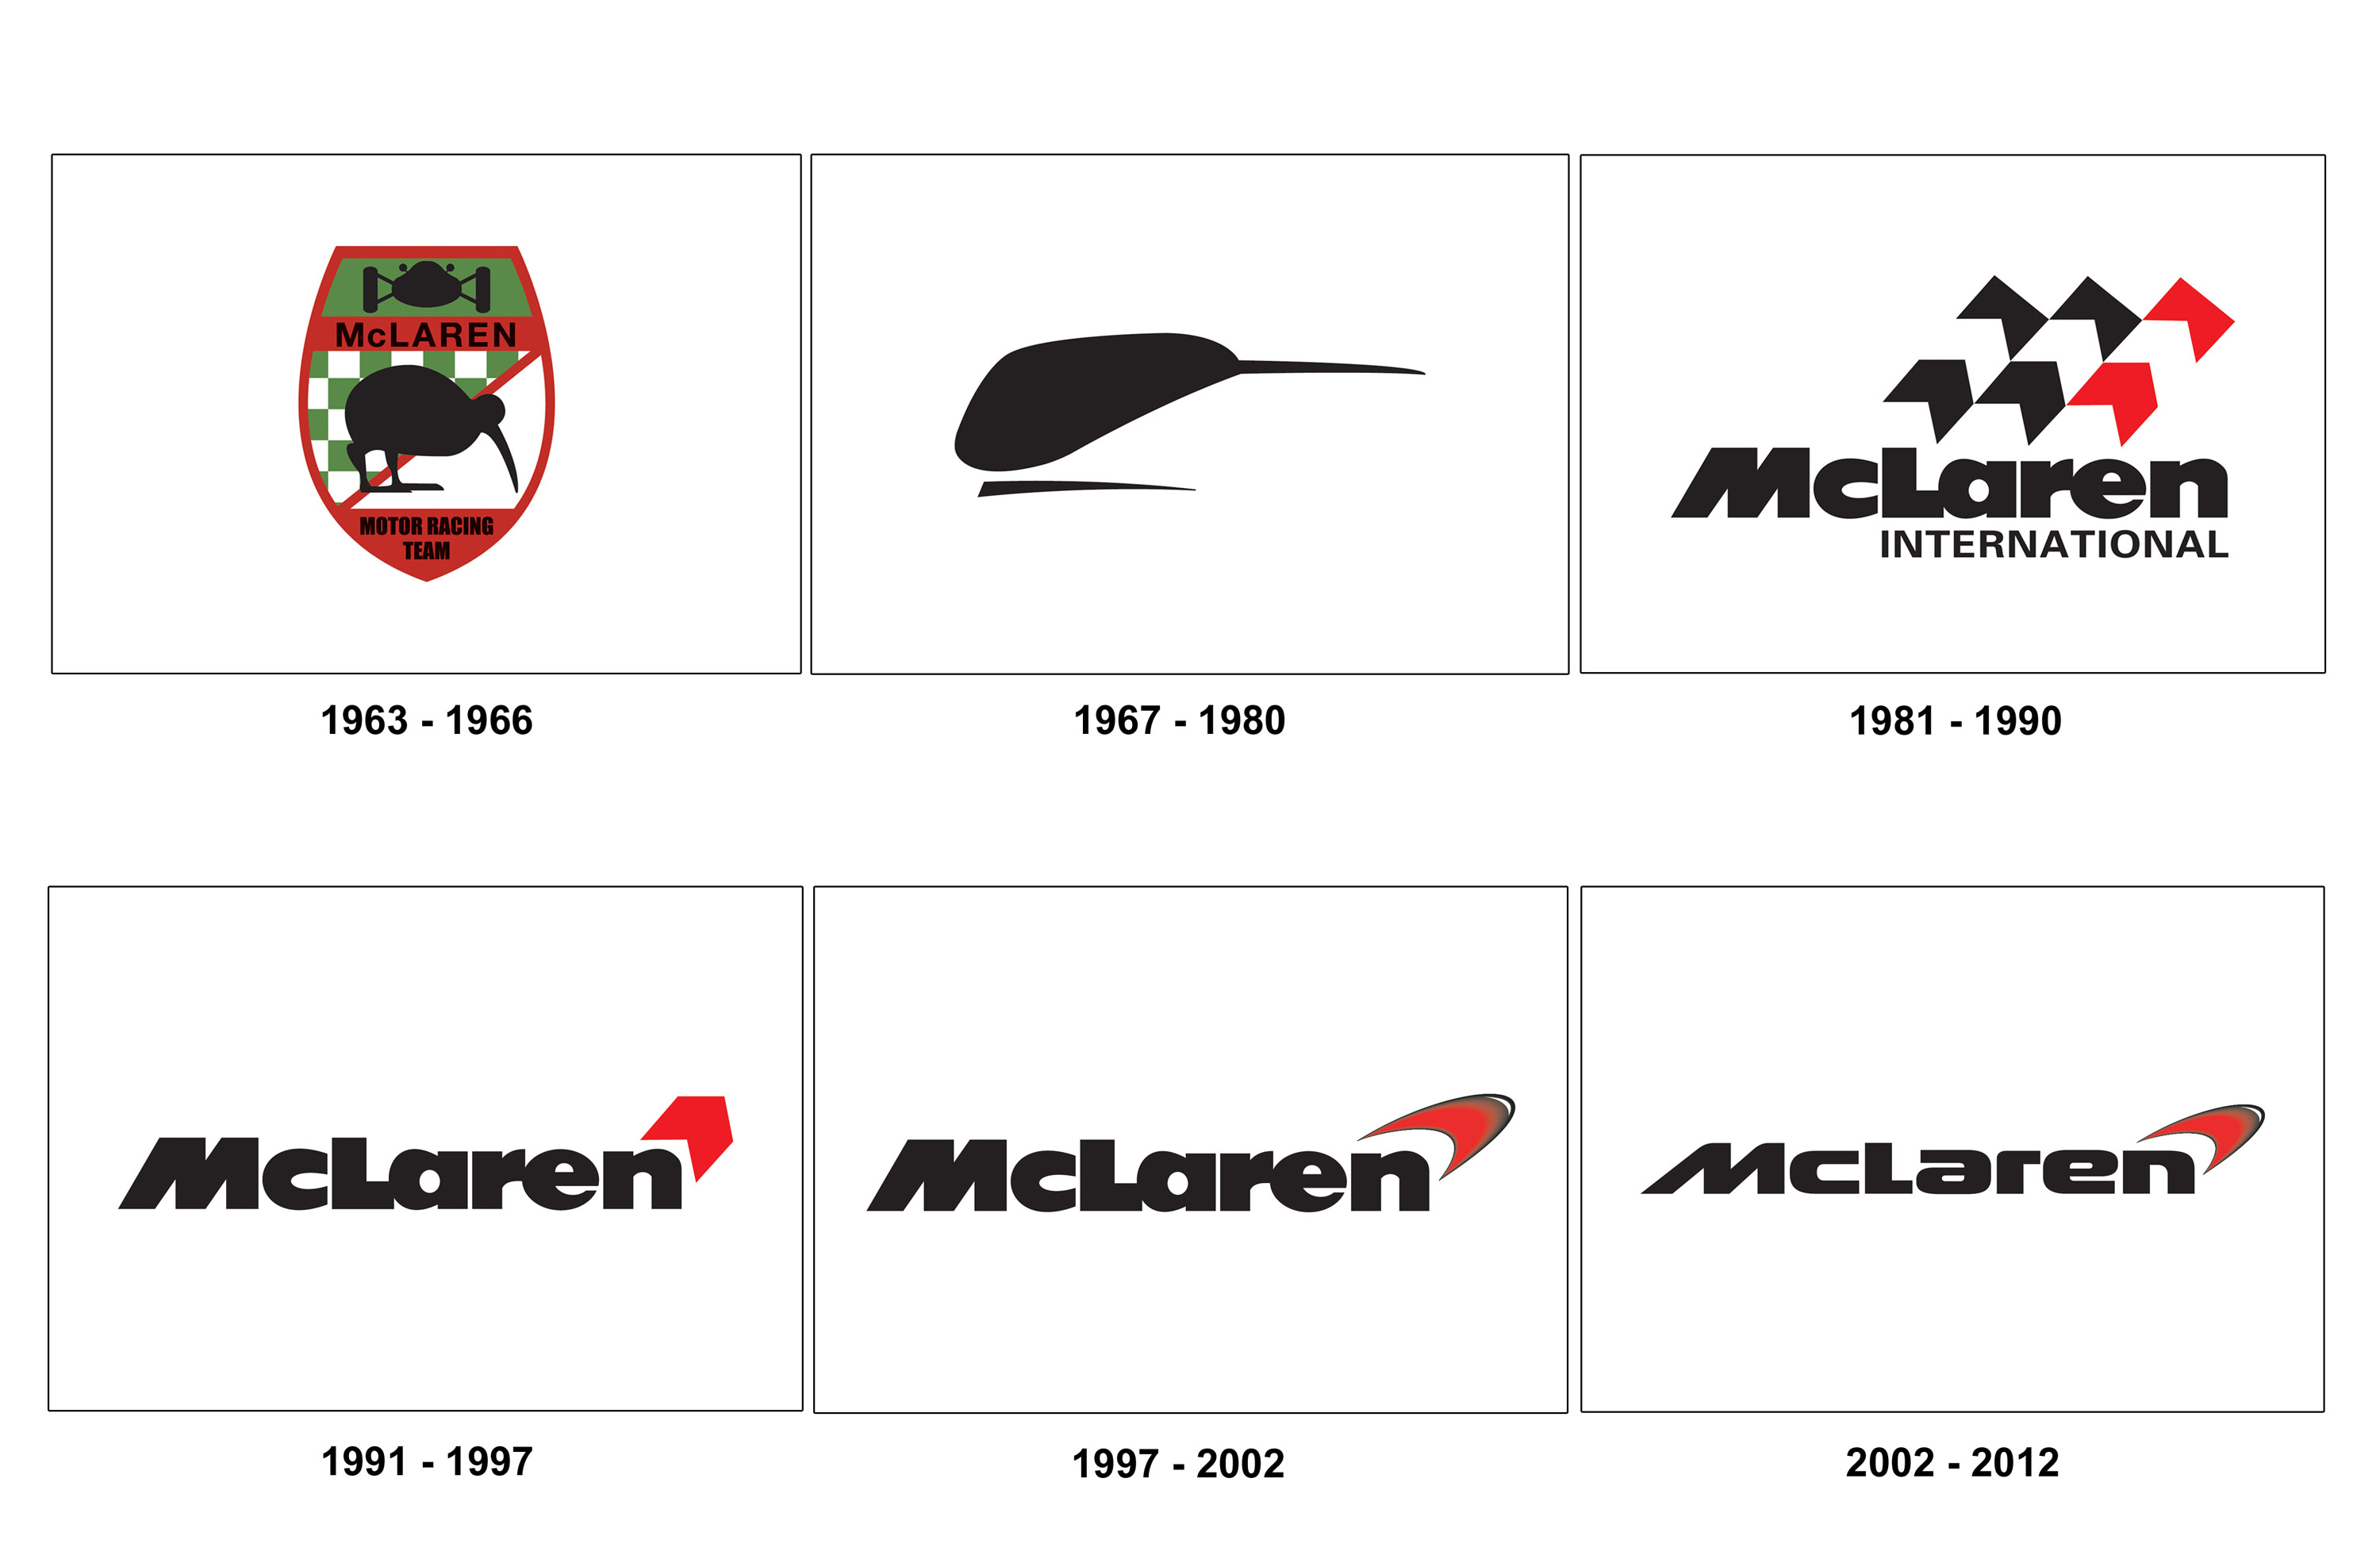 mclaren kiwi logo with Force India Unveil New Car On Twitter Before on The Not So Secret History Of Mclarens Ties To Tobacco 1247507605 besides Mclaren Hold A Minutes Noise For Team Founder additionally 5 furthermore Force india unveil new car on twitter before as well Fire.